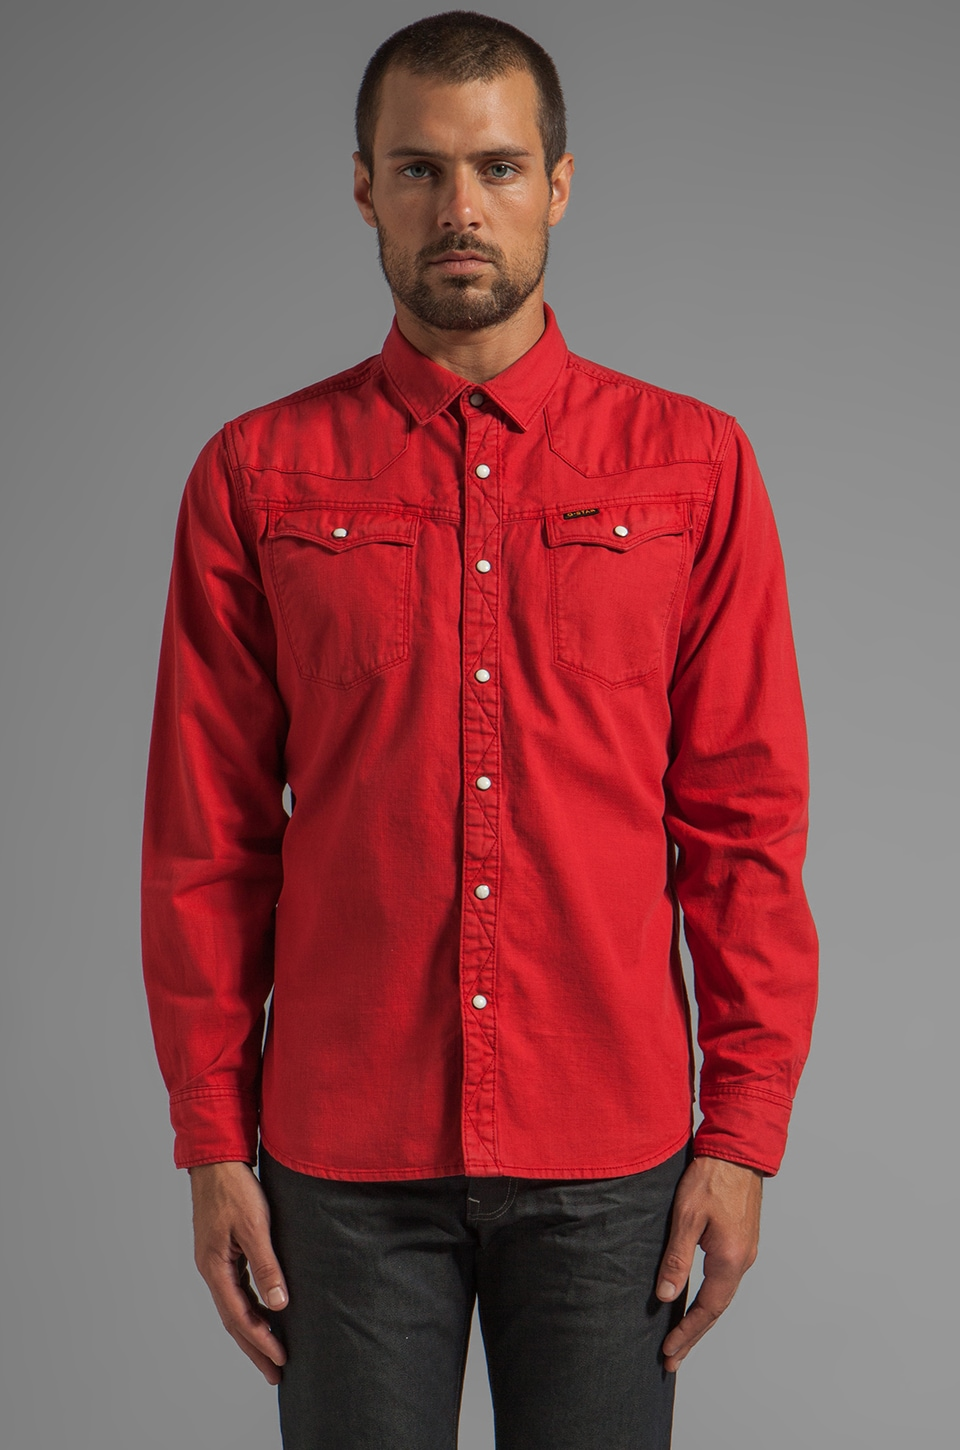 G-Star Tailor Long Sleeve Shirt in Oil Red